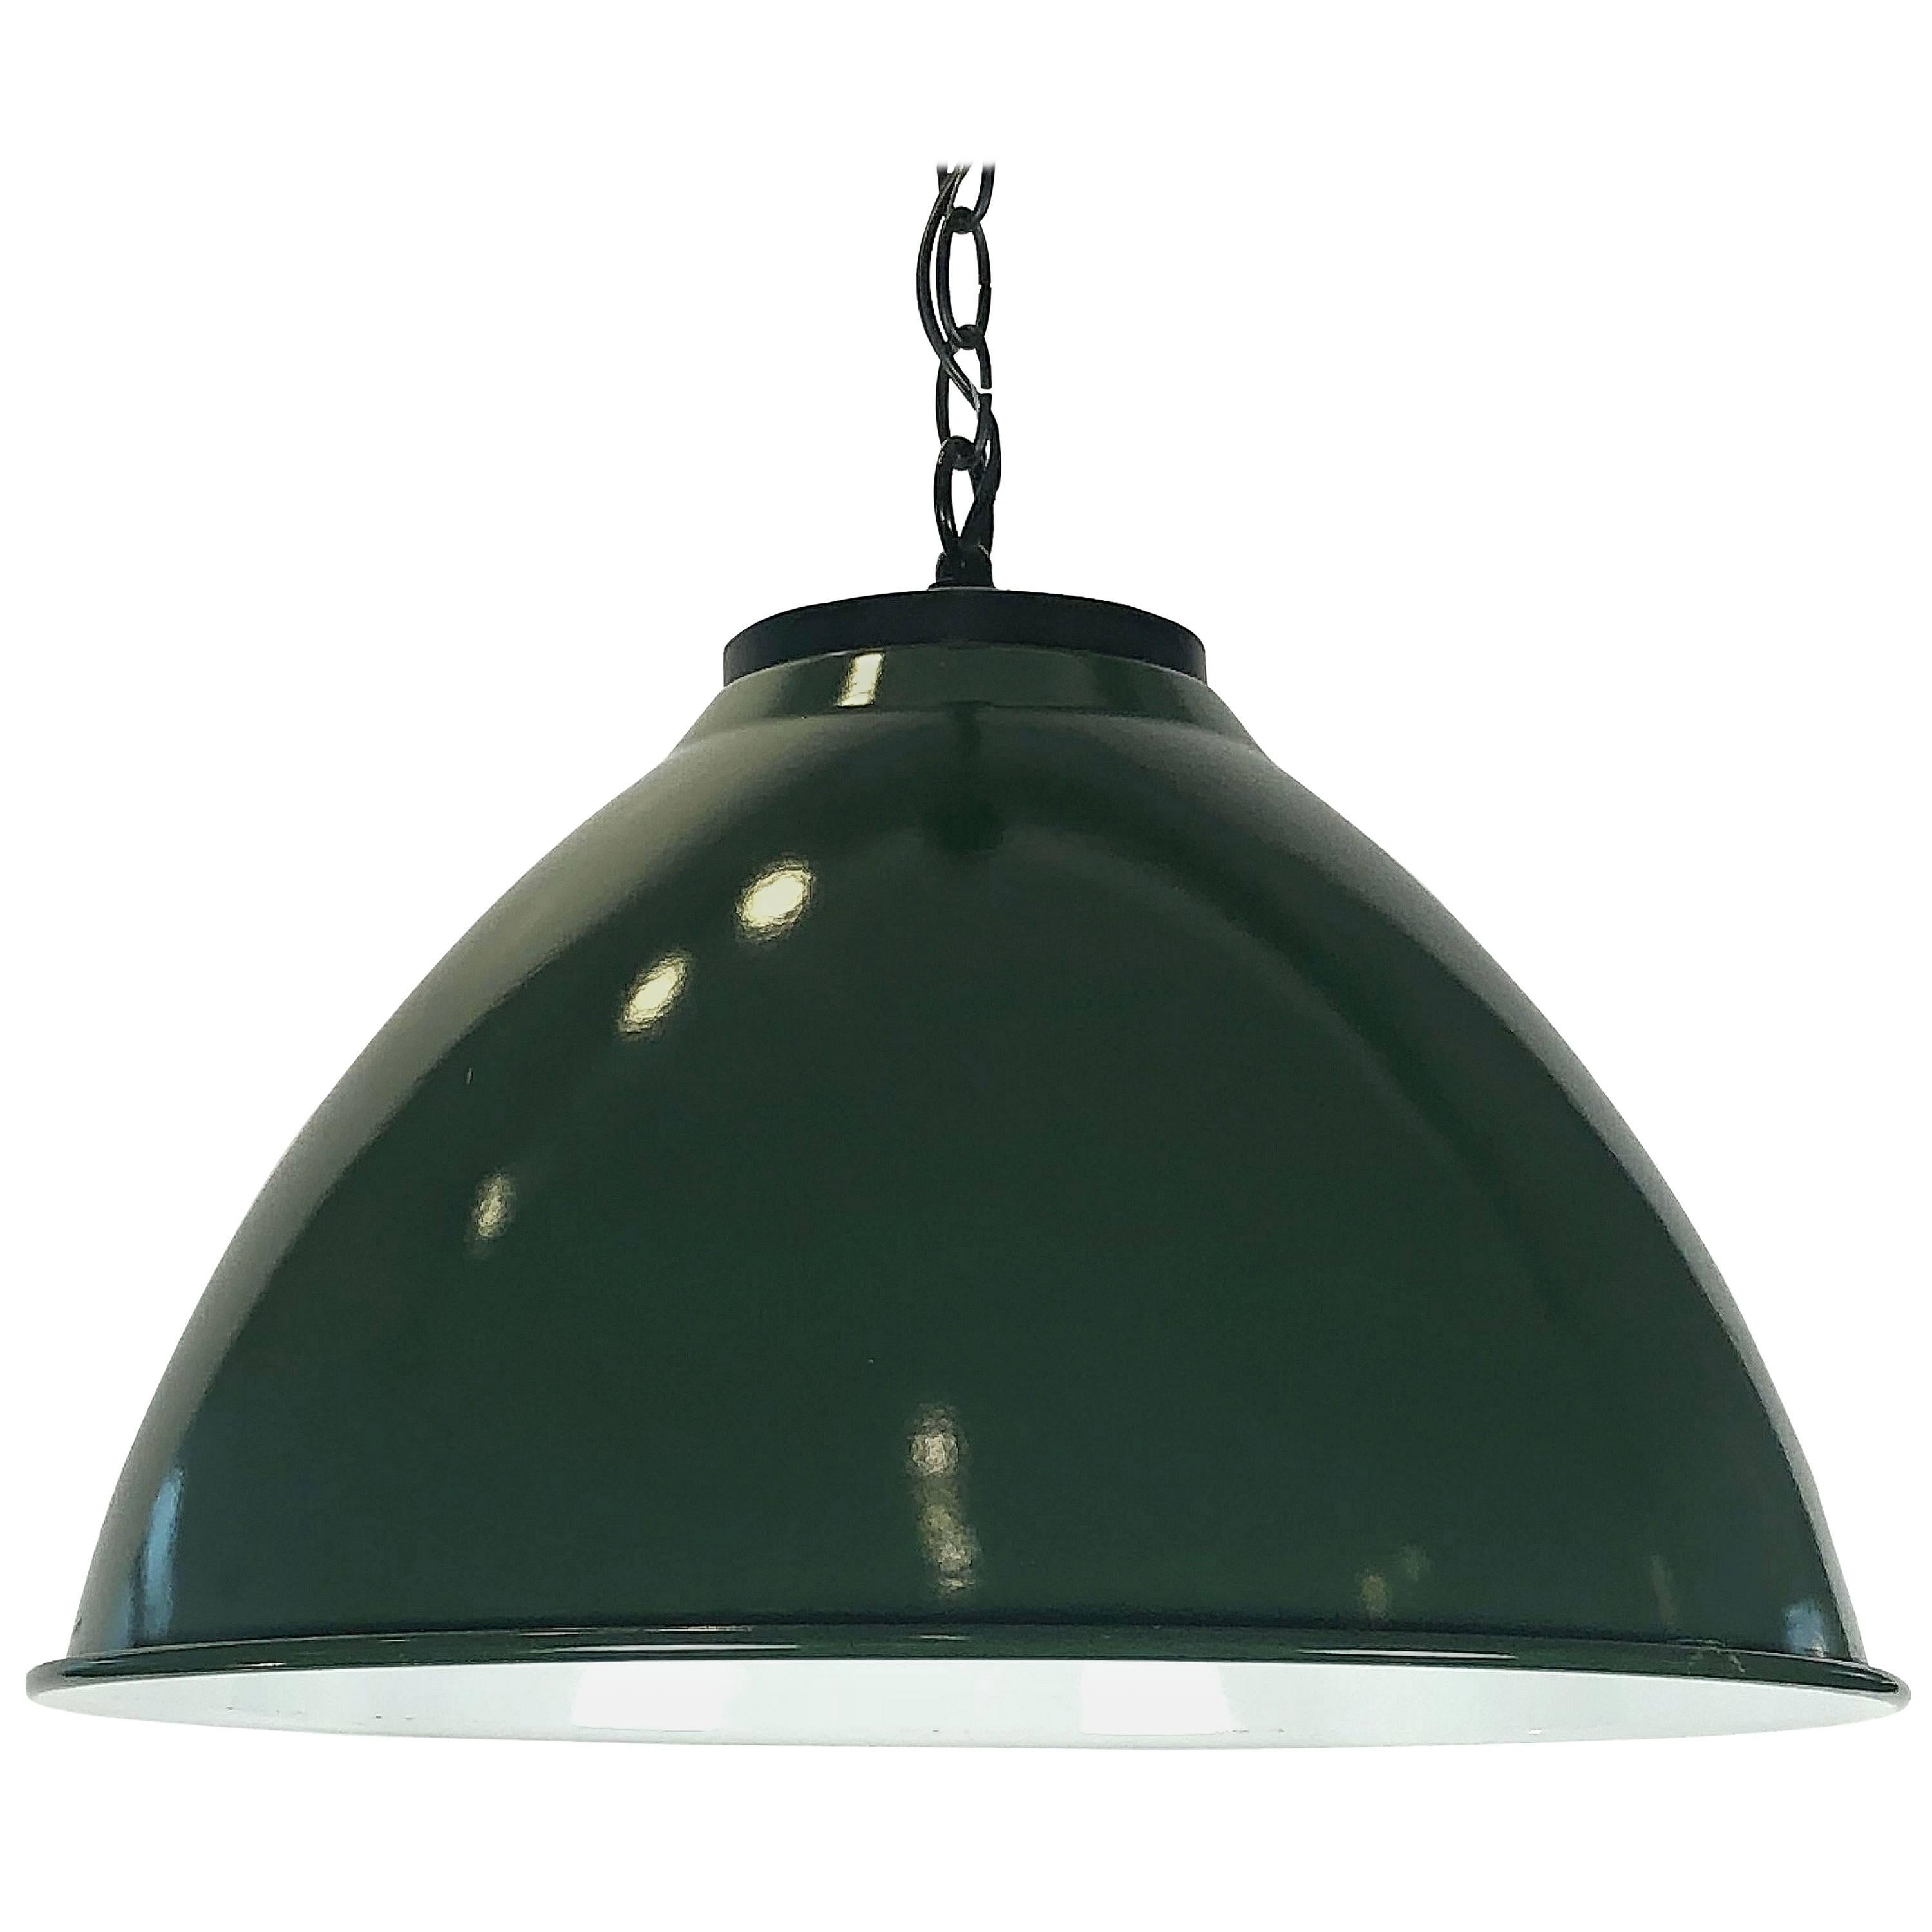 "Green Tole Industrial Hanging Lamps or Lanterns from England (18 1/4"" Diameter)"